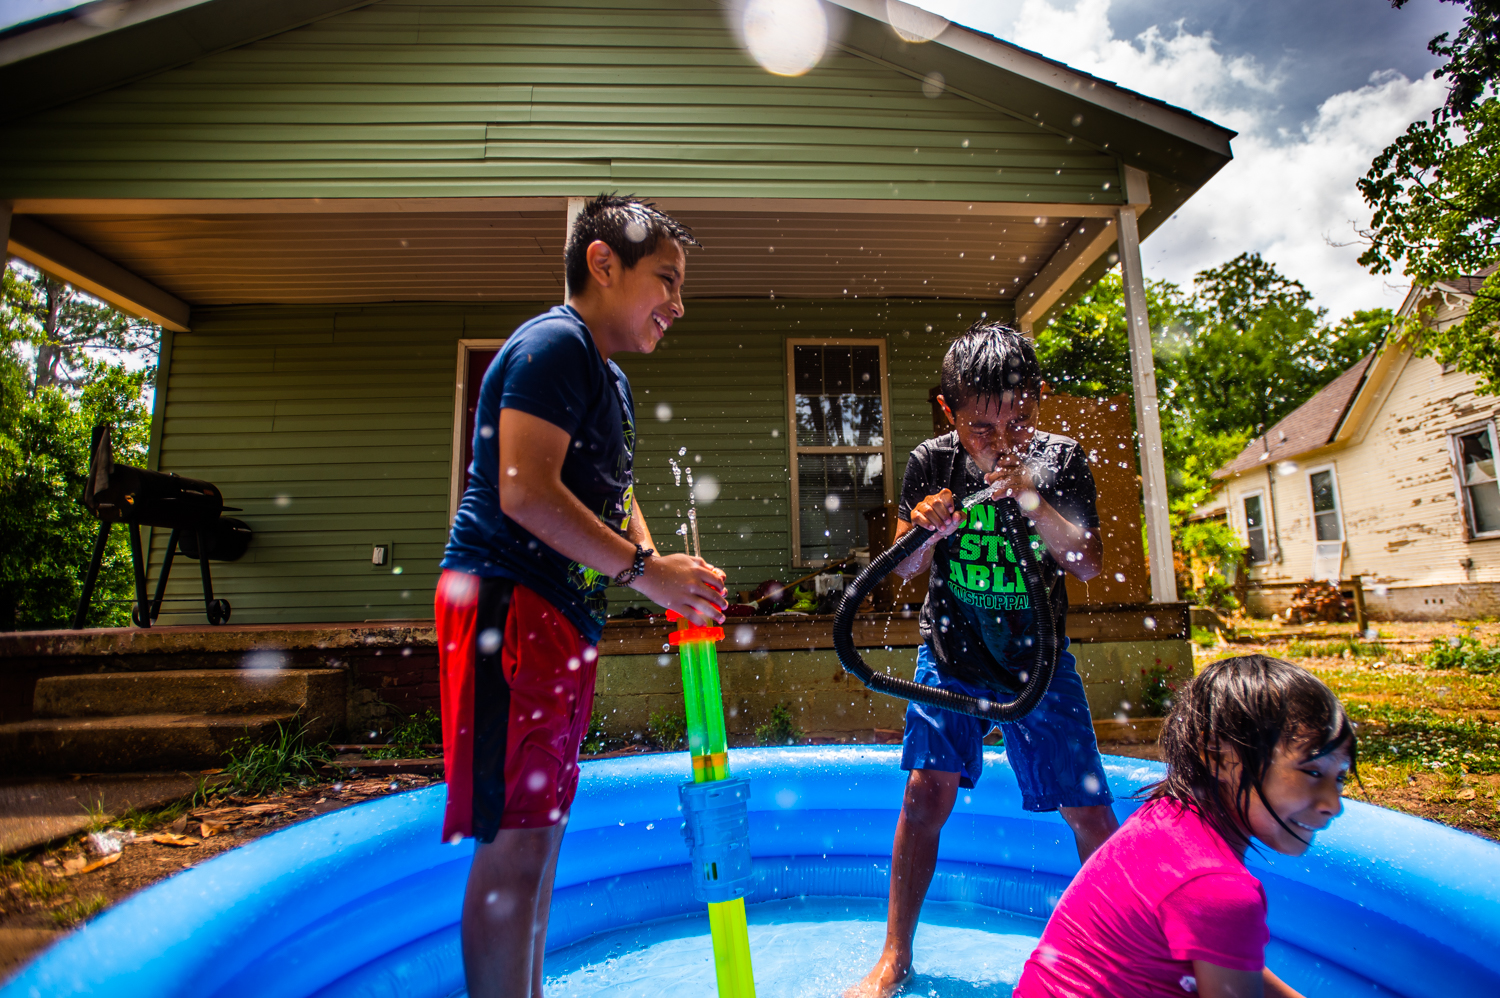 Matias Matias 8, center, uses a vacuum hose to squirt water as he plays in the pool with his brother Juan, 12, left, and sister Jessica, 7, in Southwest Decatur, Ala. on May 30, 2019.